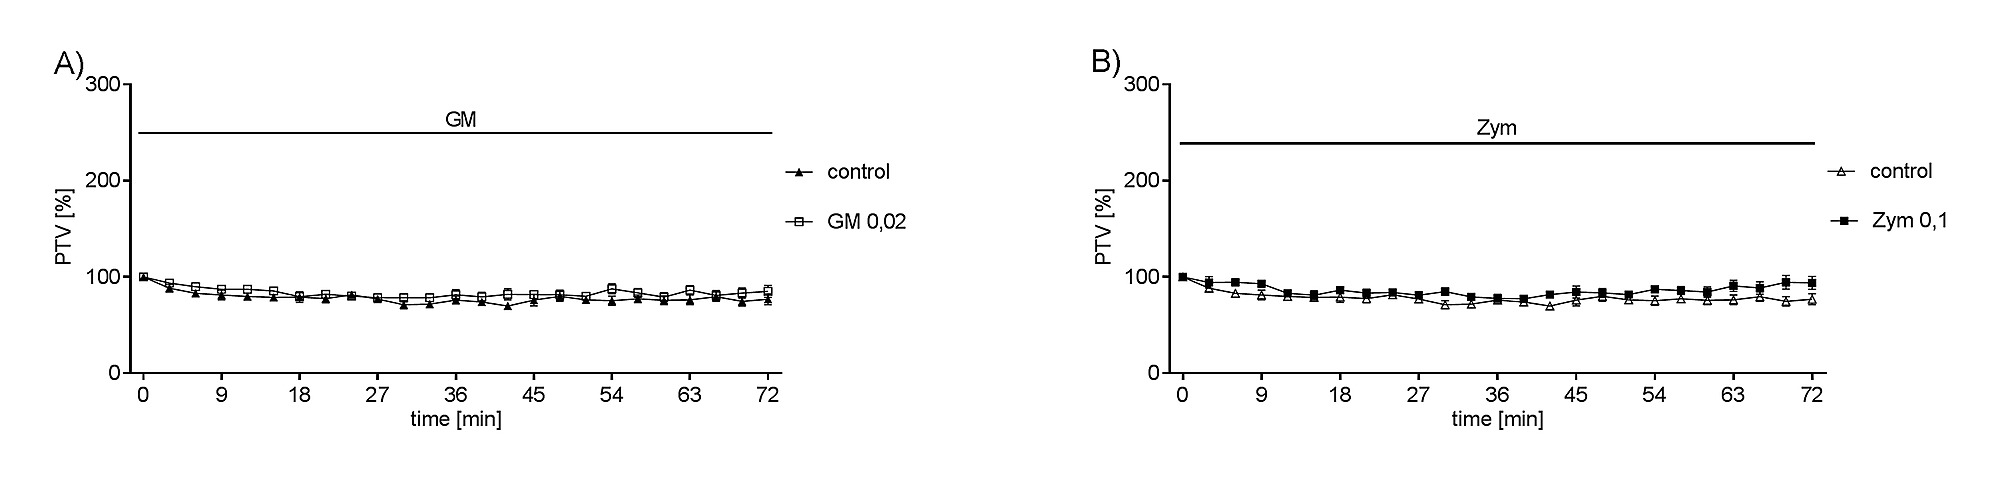 hight resolution of s1 fig a b gm or zym had no effect on basal ptv